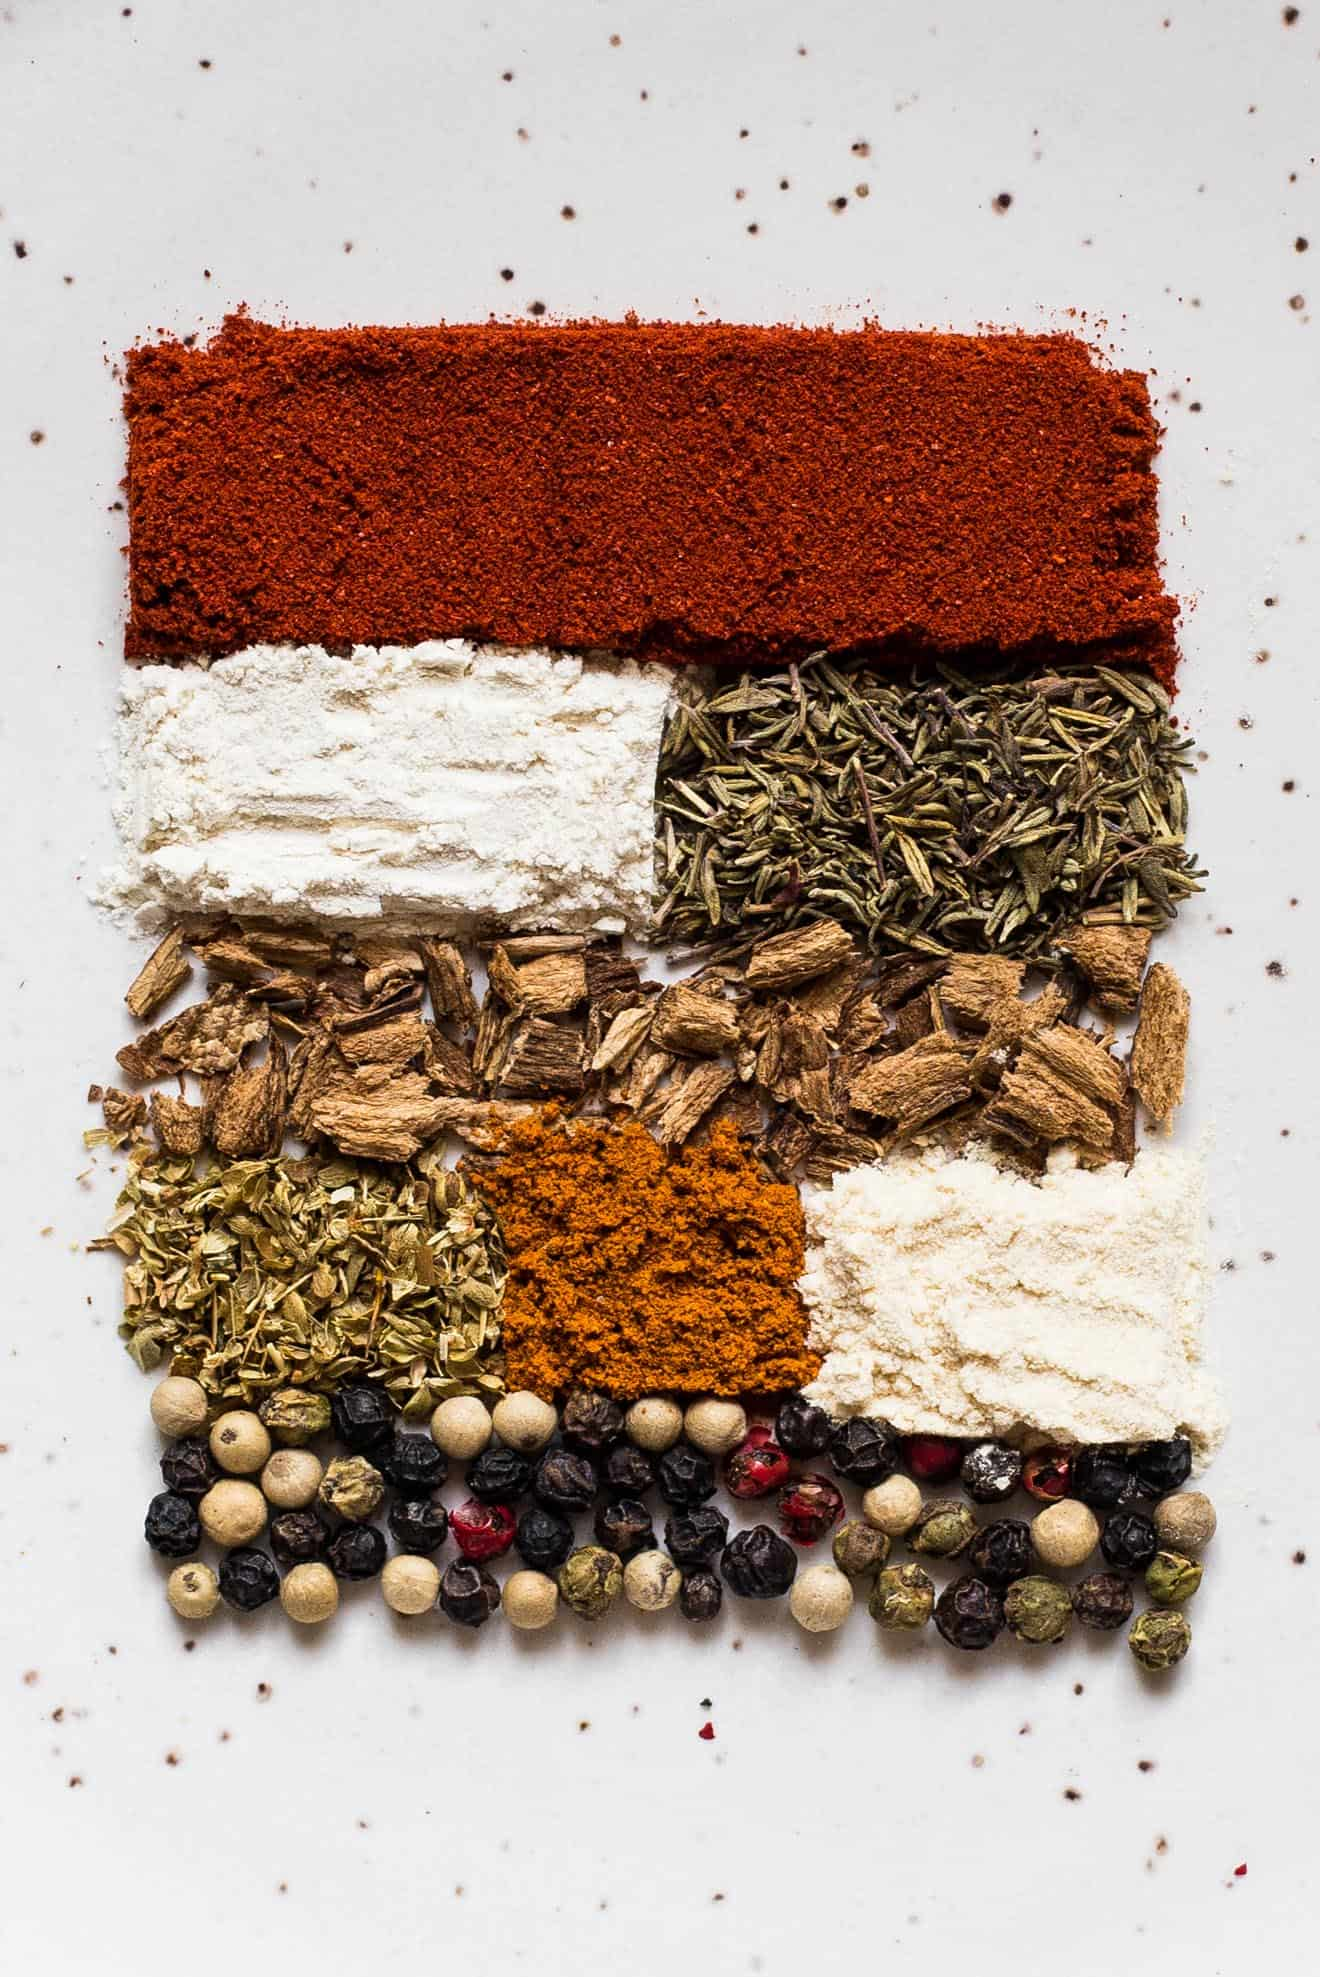 HOMEMADE Cajun Seasoning with Porcini Mushroom Powder - this spice blend is great on chicken, salmon, marinades and soups!